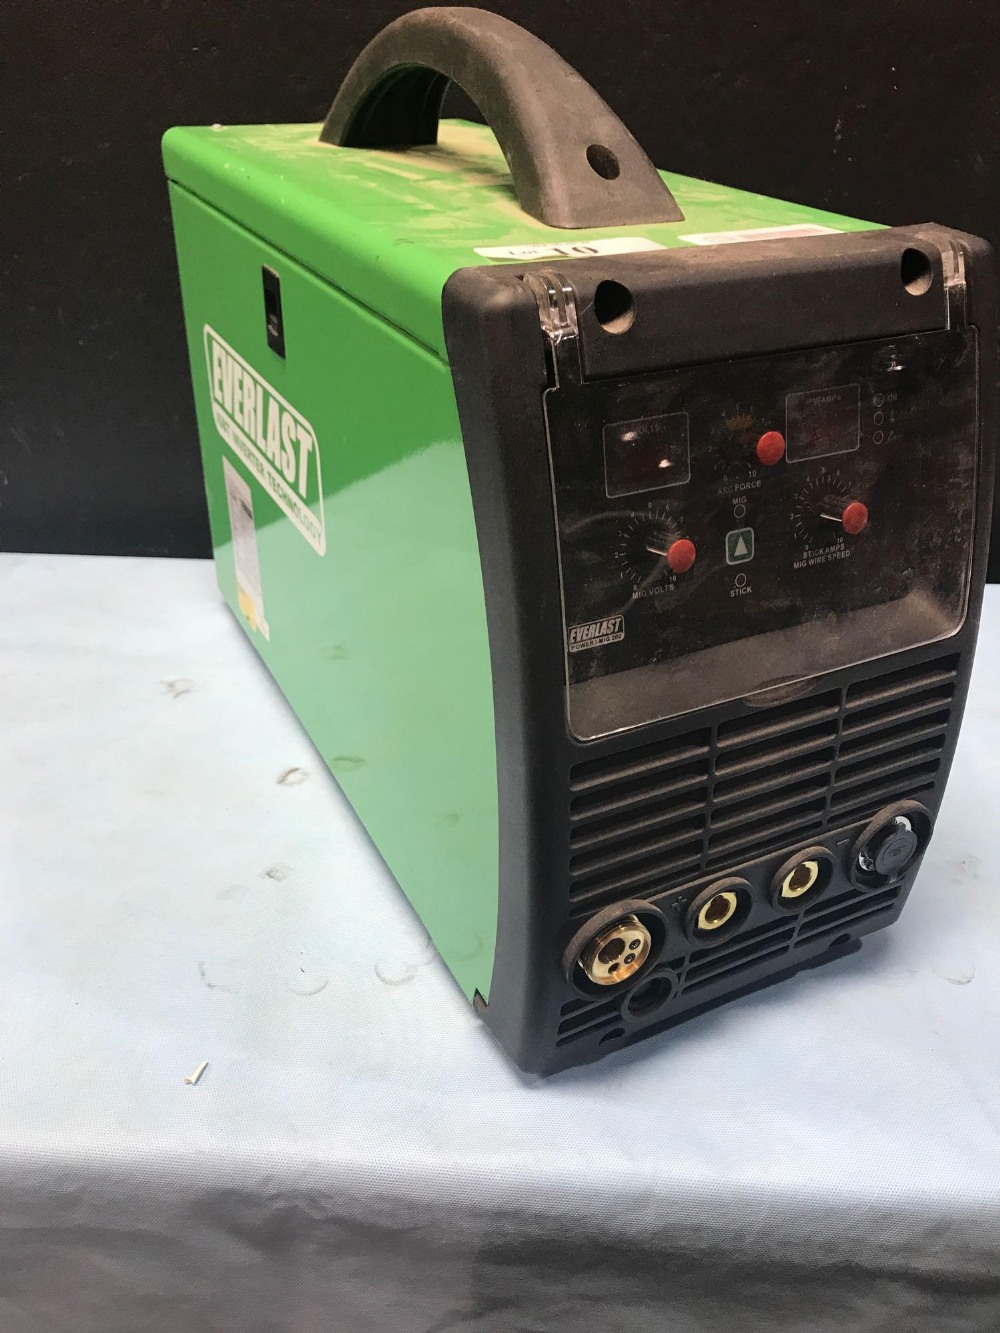 EVERLAST IGBT INVERTER TECHNOLOGY - POWER I-TIG 200 WELDER